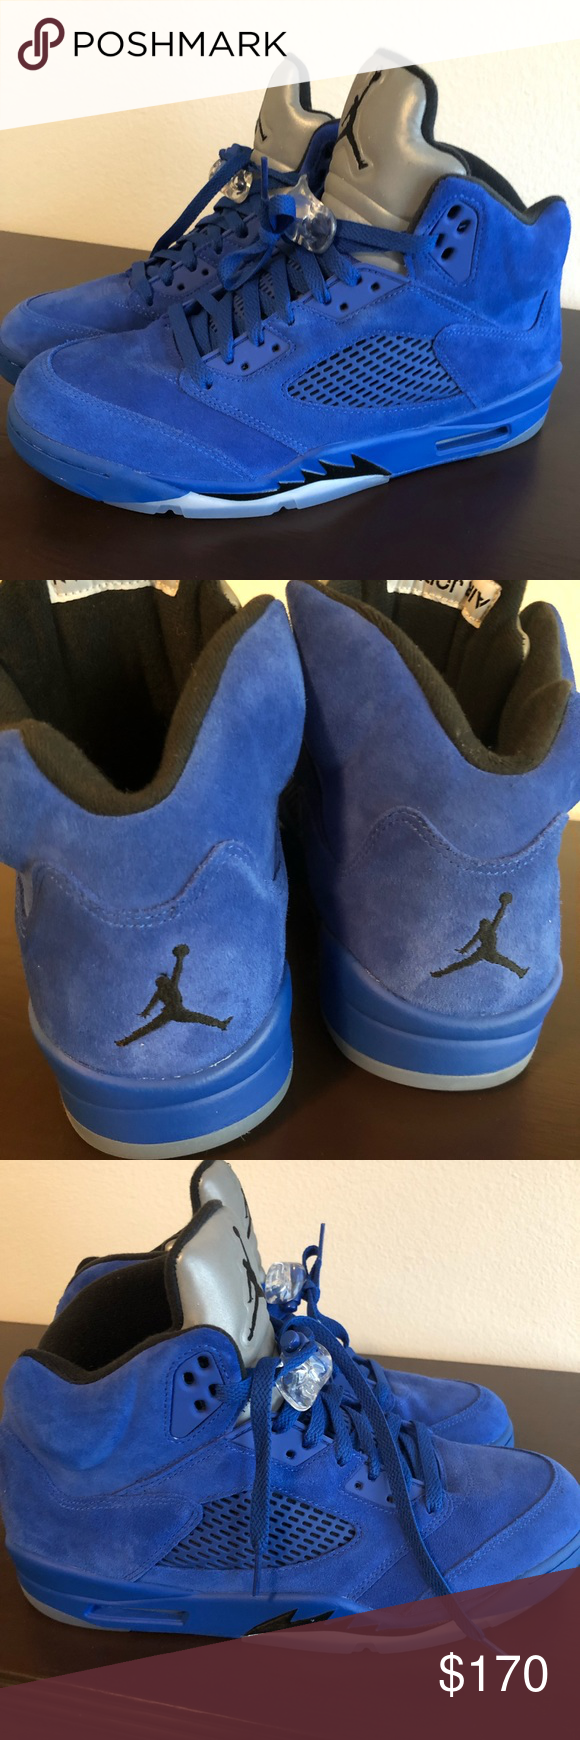 adcdbfad2e6a31 Nike Air Jordan Retro 5 Blue Suede Worn once